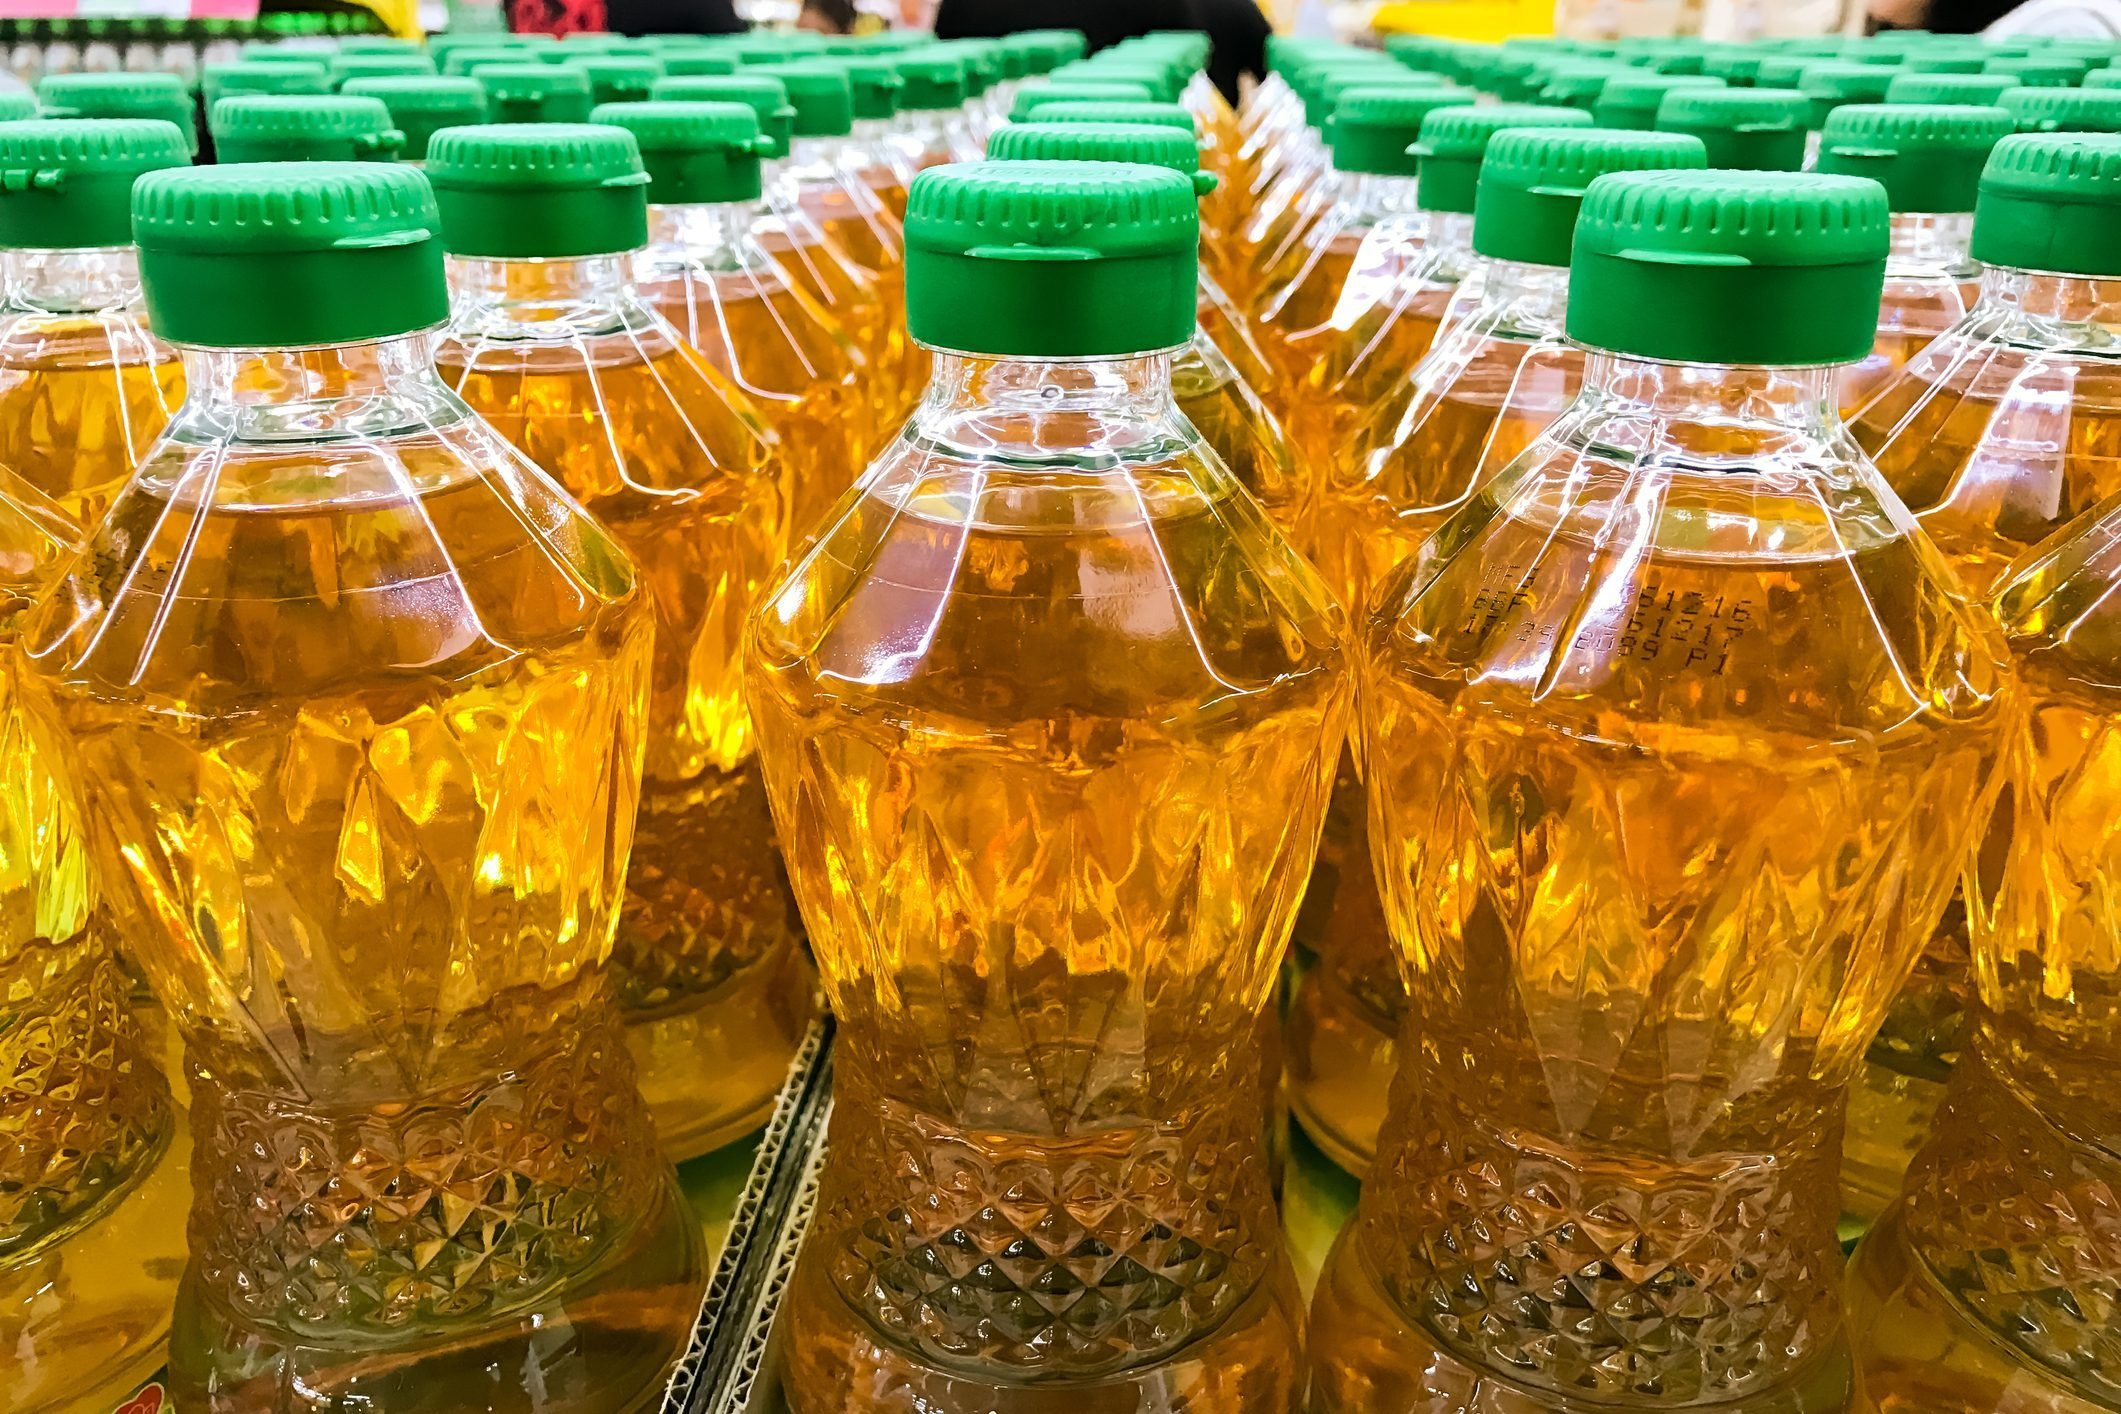 Closed up pile of bottled palm oil